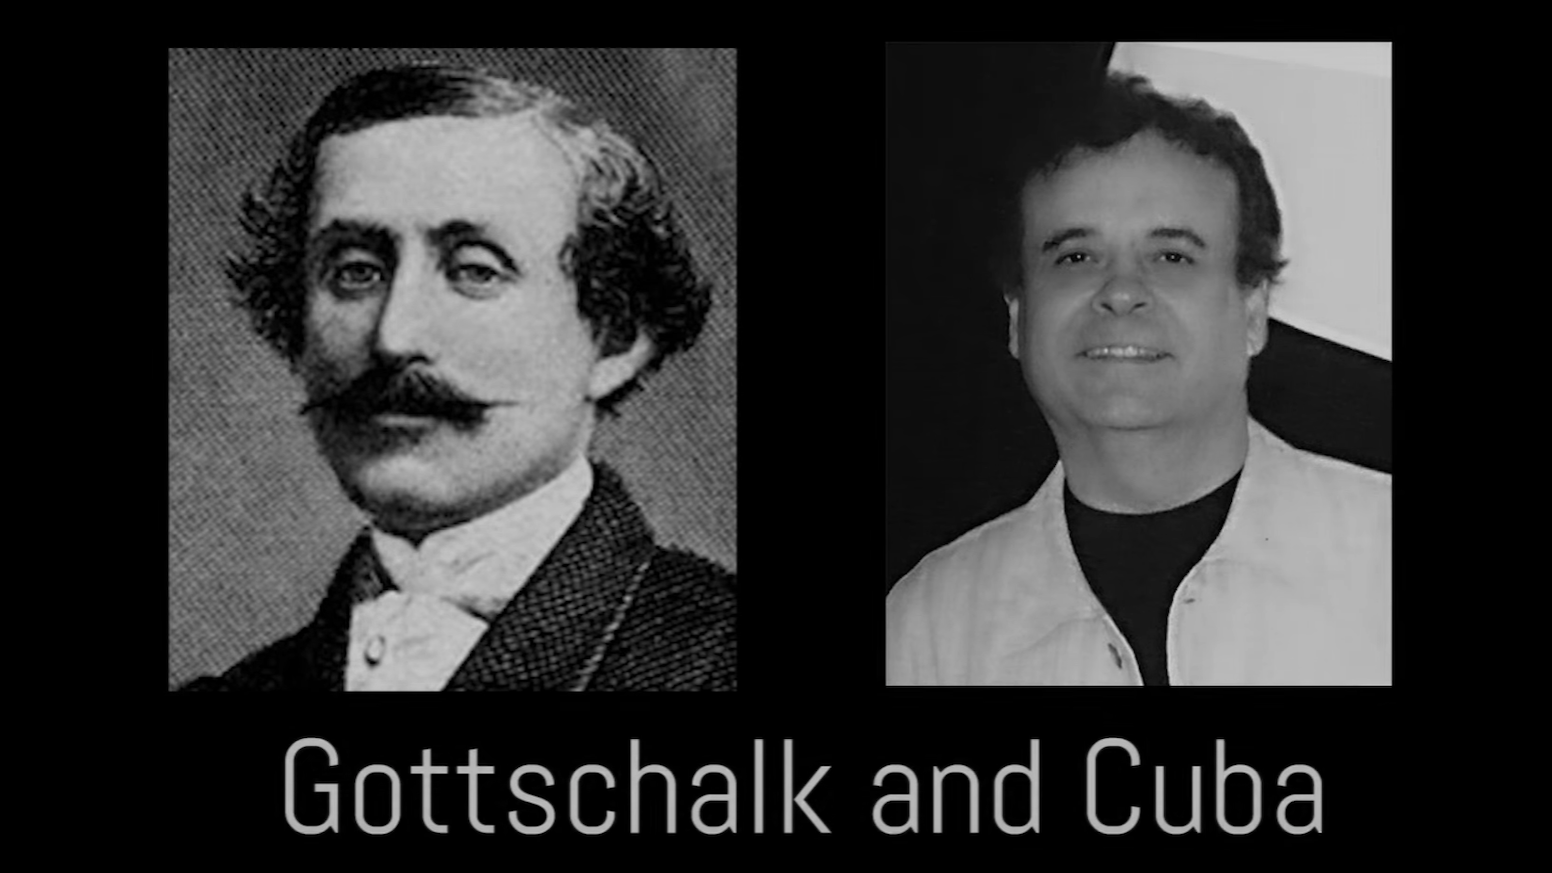 Gottschalk and Cuba is a journey through 100 years of music that started with a 19th Century American pianist-composer visiting Havana.